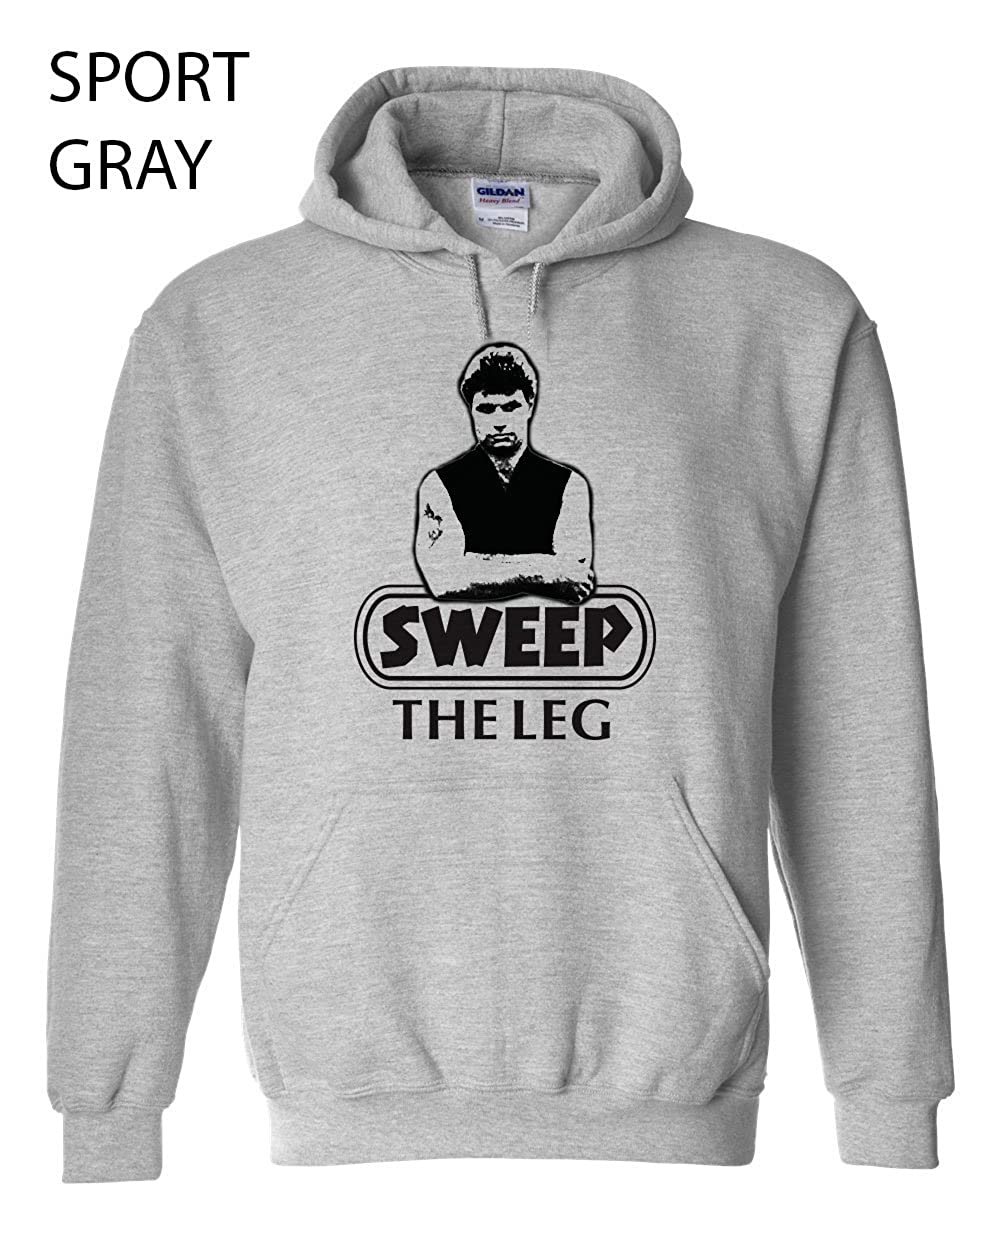 206 Sweep the Leg Funny Hooded Sweatshirt